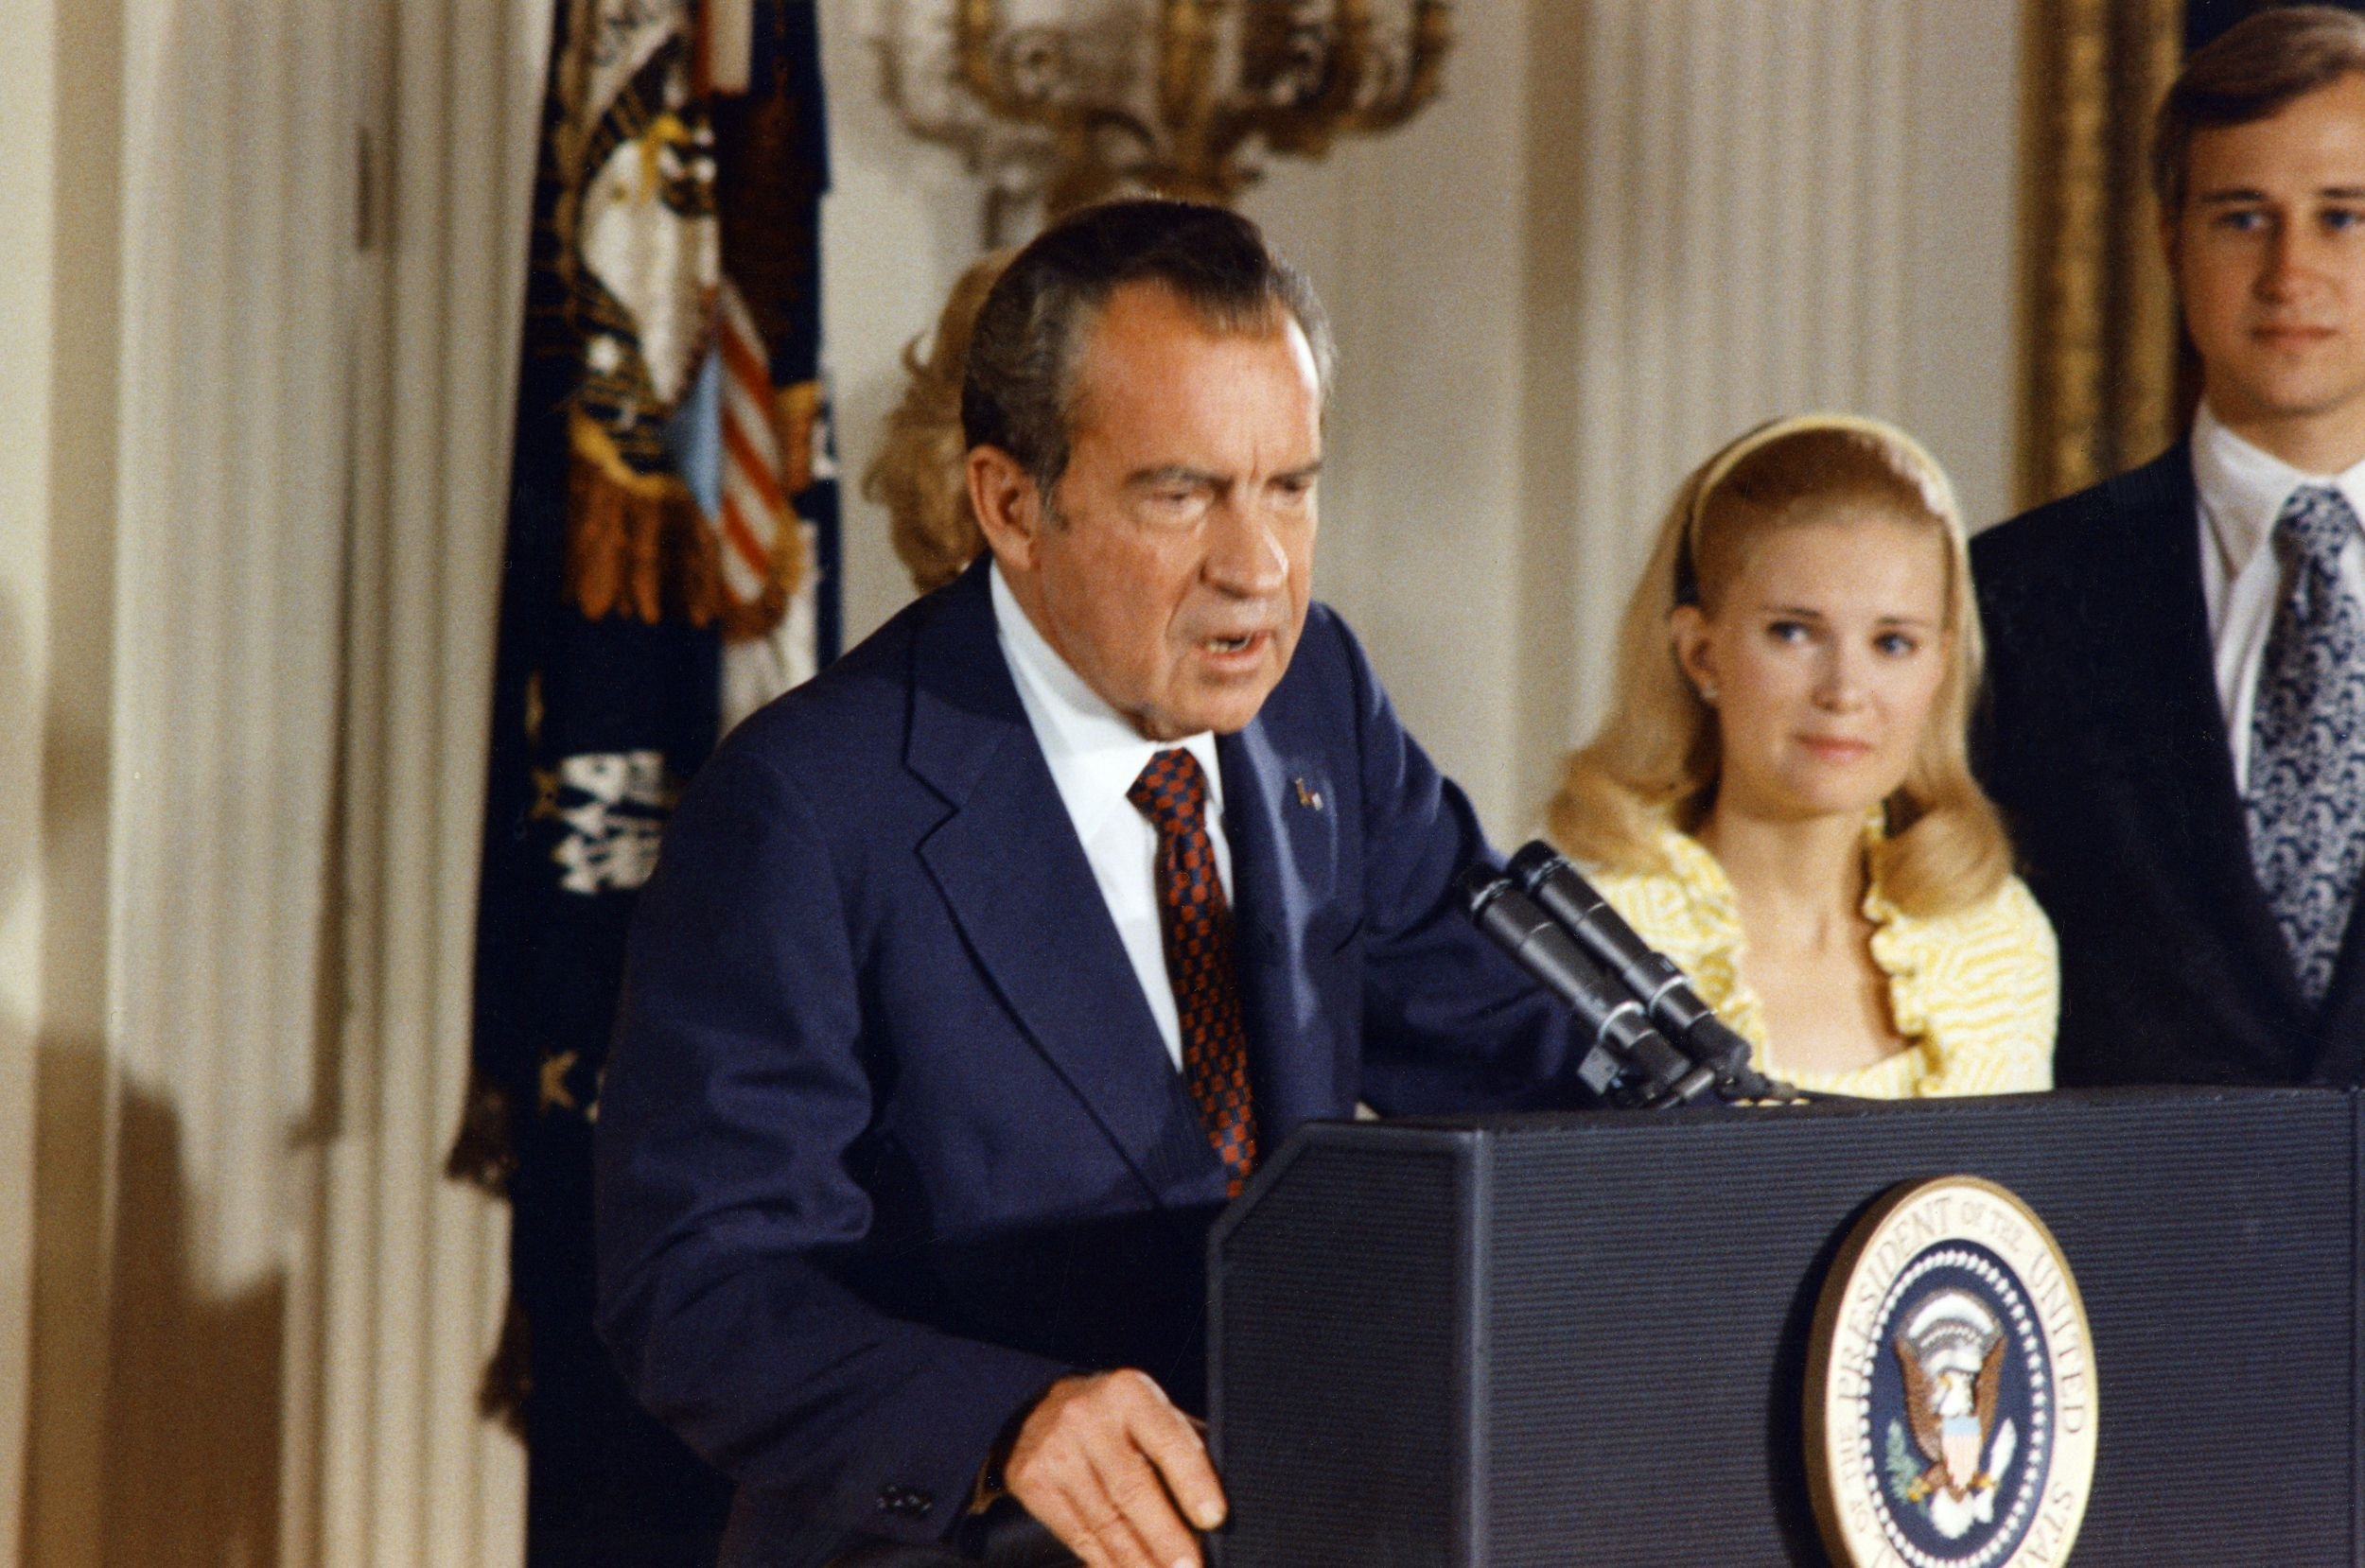 Grand Jury Was Prepared to Indict Richard Nixon for Watergate, New Documents Show